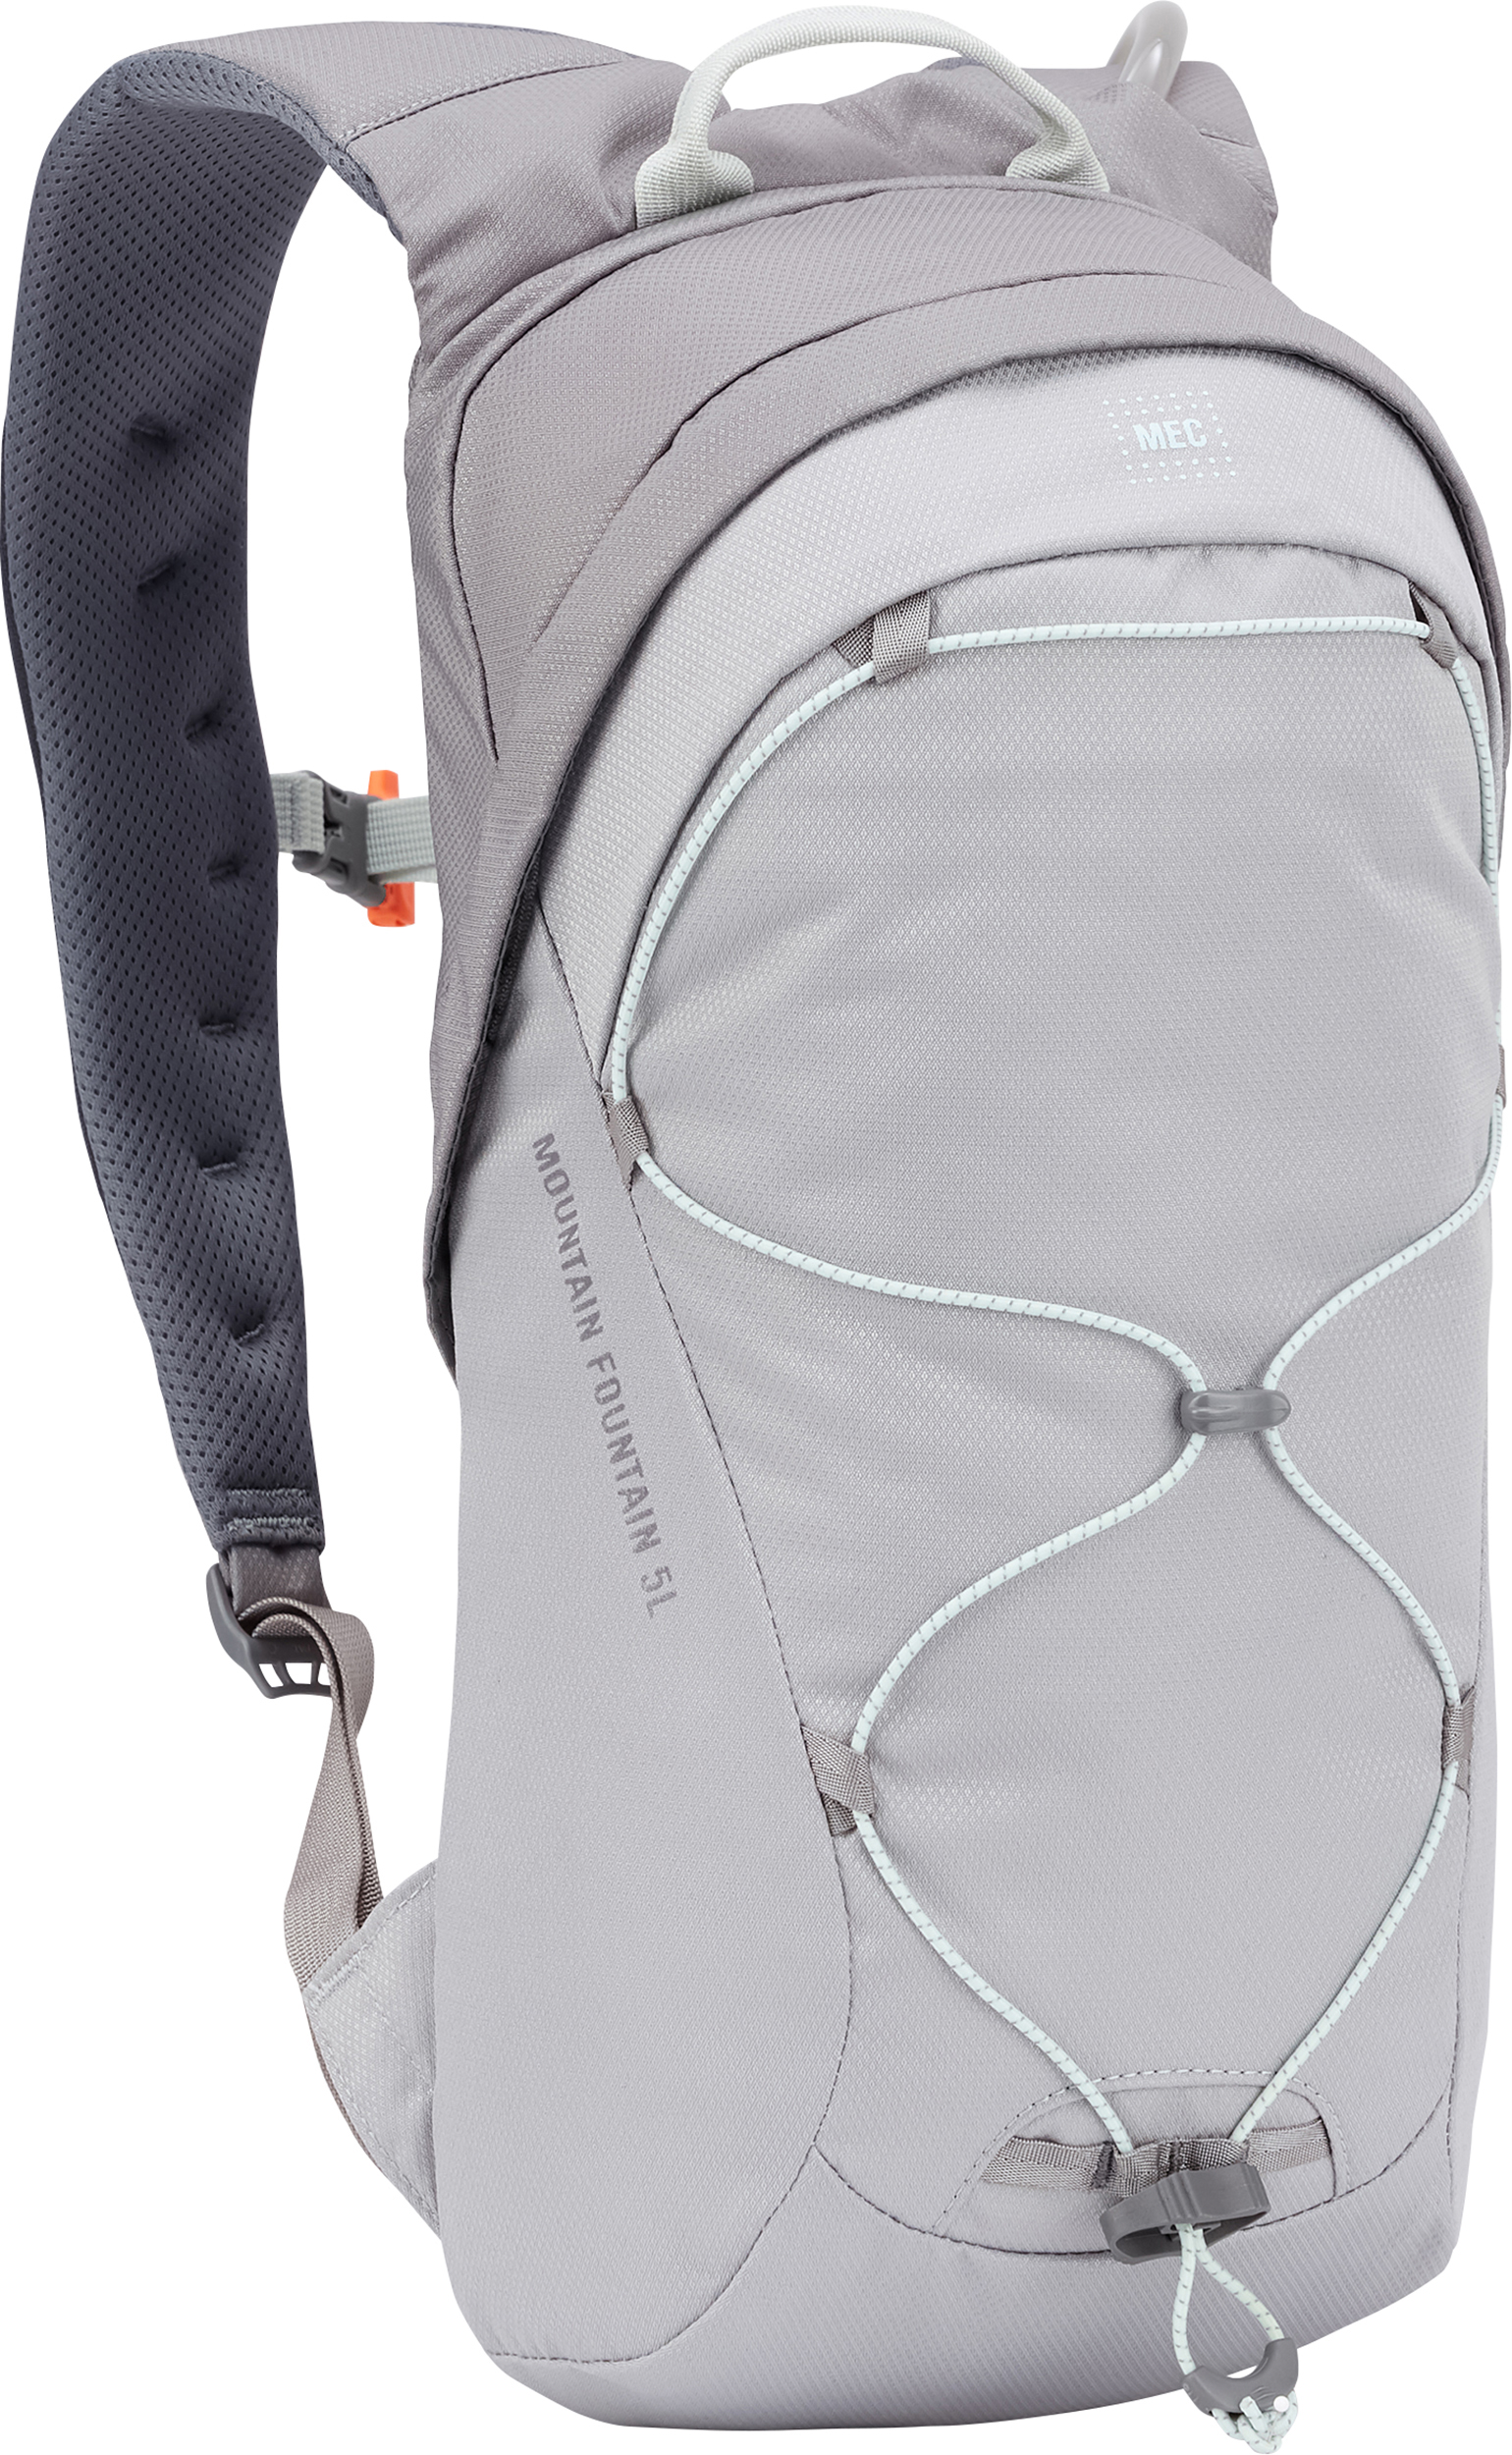 ee7ef265a350f Bike backpacks and messenger bags | MEC